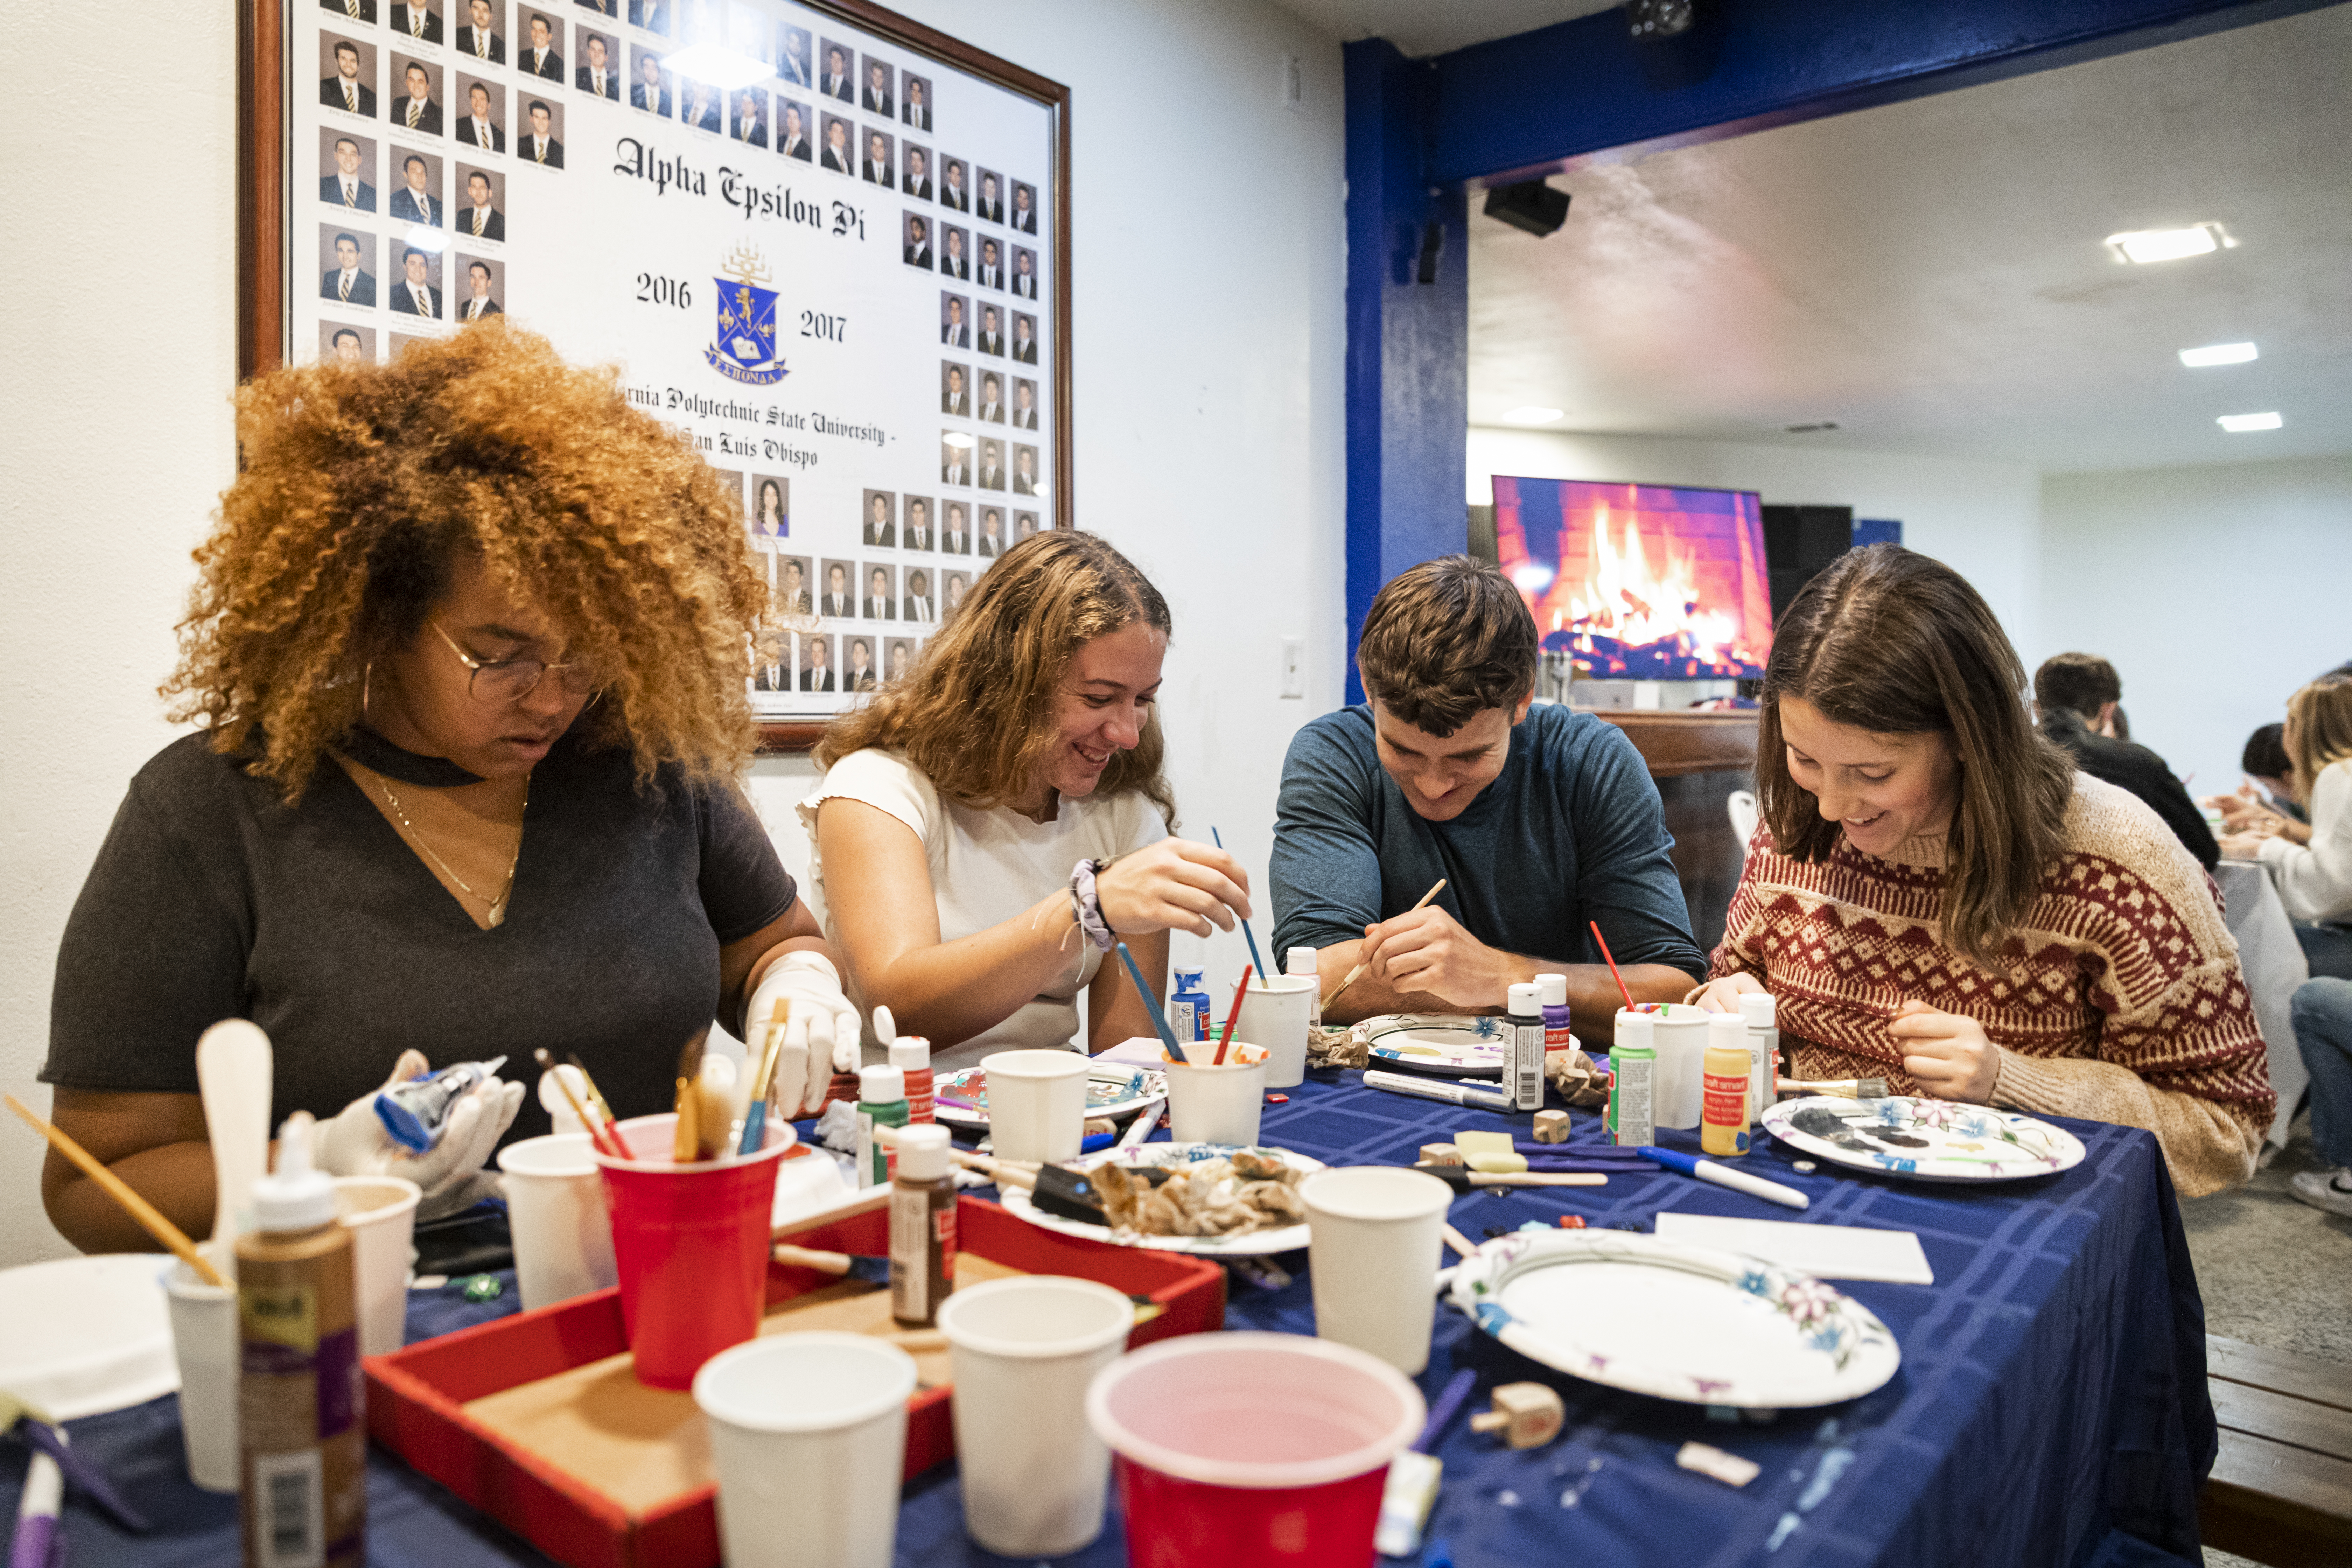 A group of students sit around a table piled with crafting supplies, with a display of fraternity members on the wall behind them and a virtual fireplace burning in the background.